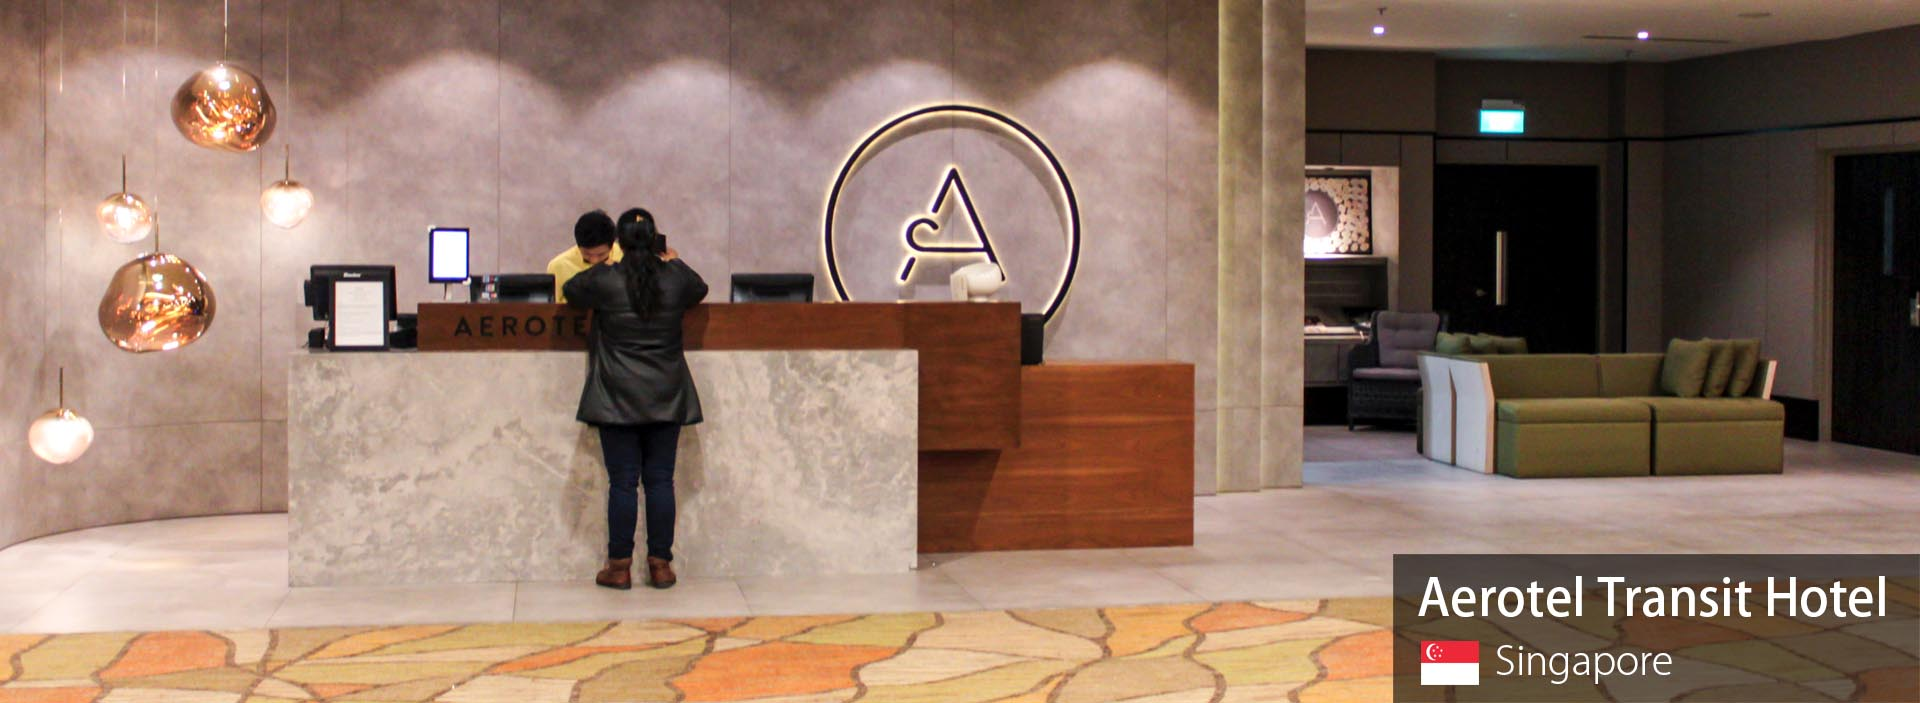 Review: Aerotel Transit Hotel Singapore Changi Airport